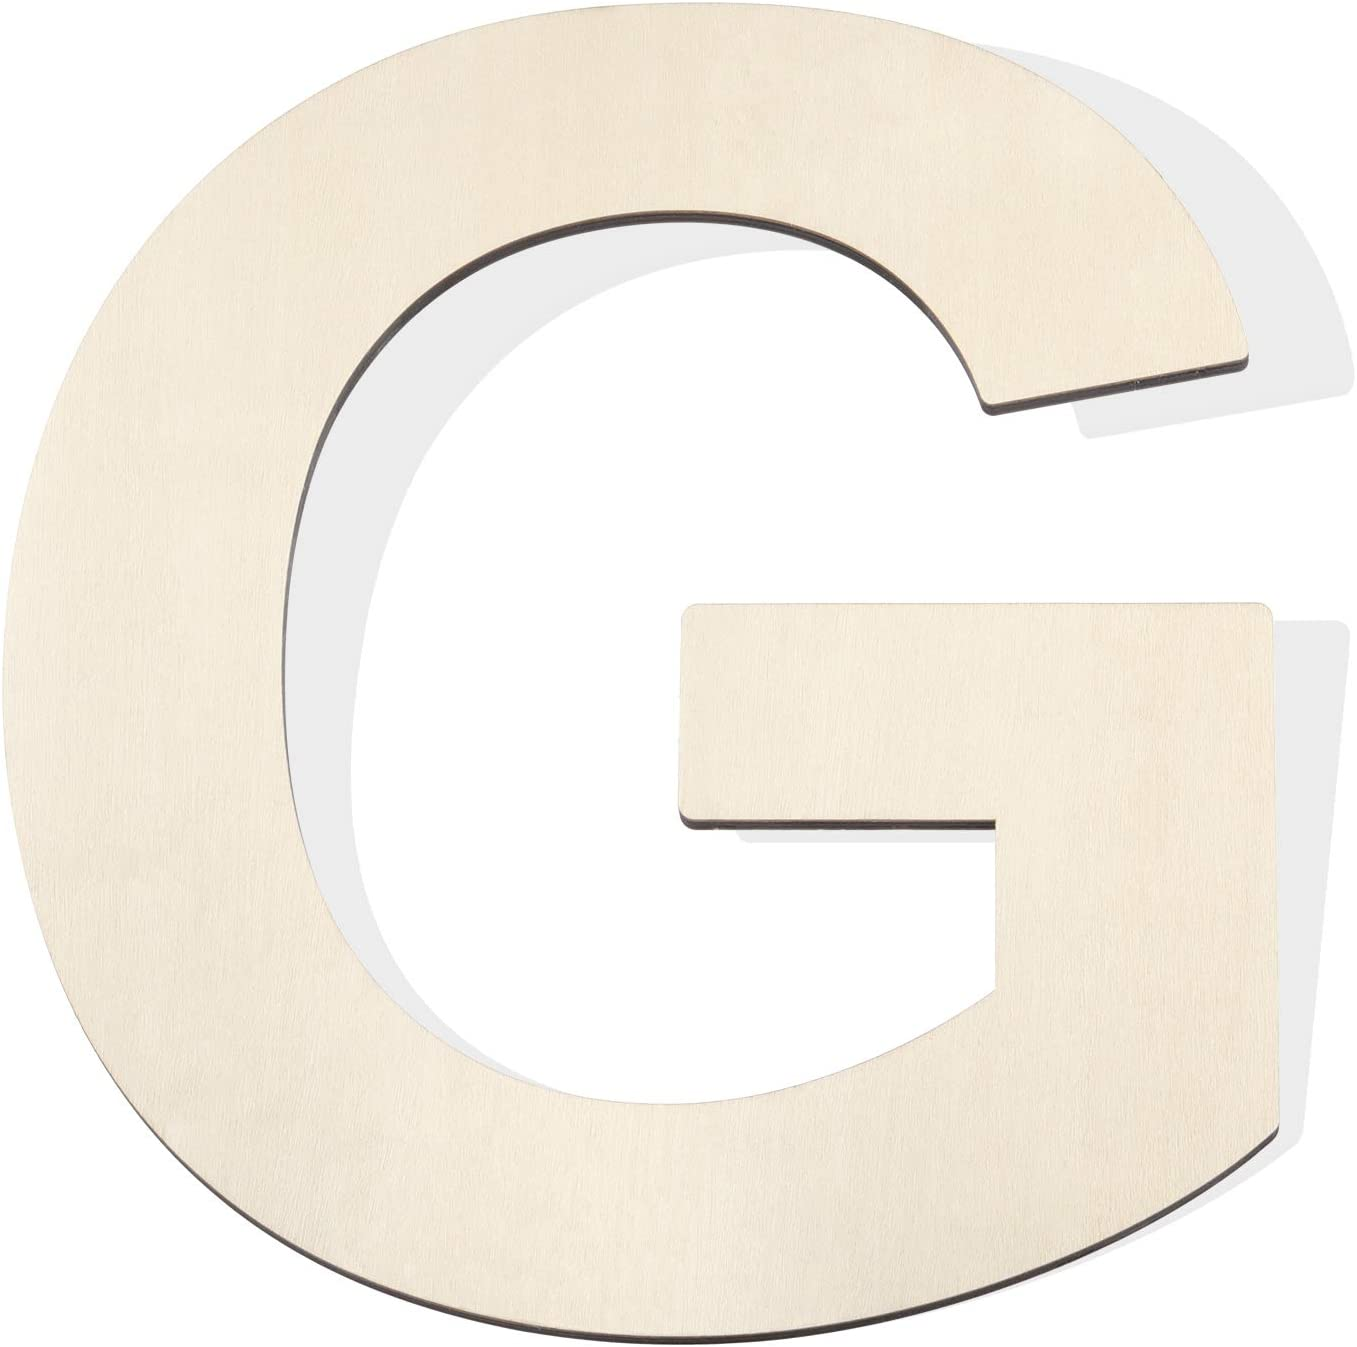 Fuyit Wood Letters G, 12 Inch Tall 1/4 Inch Thick Blank Unfinished Wooden Letter for DIY Crafts, Painting, Wall Arts, Home & Party Decor